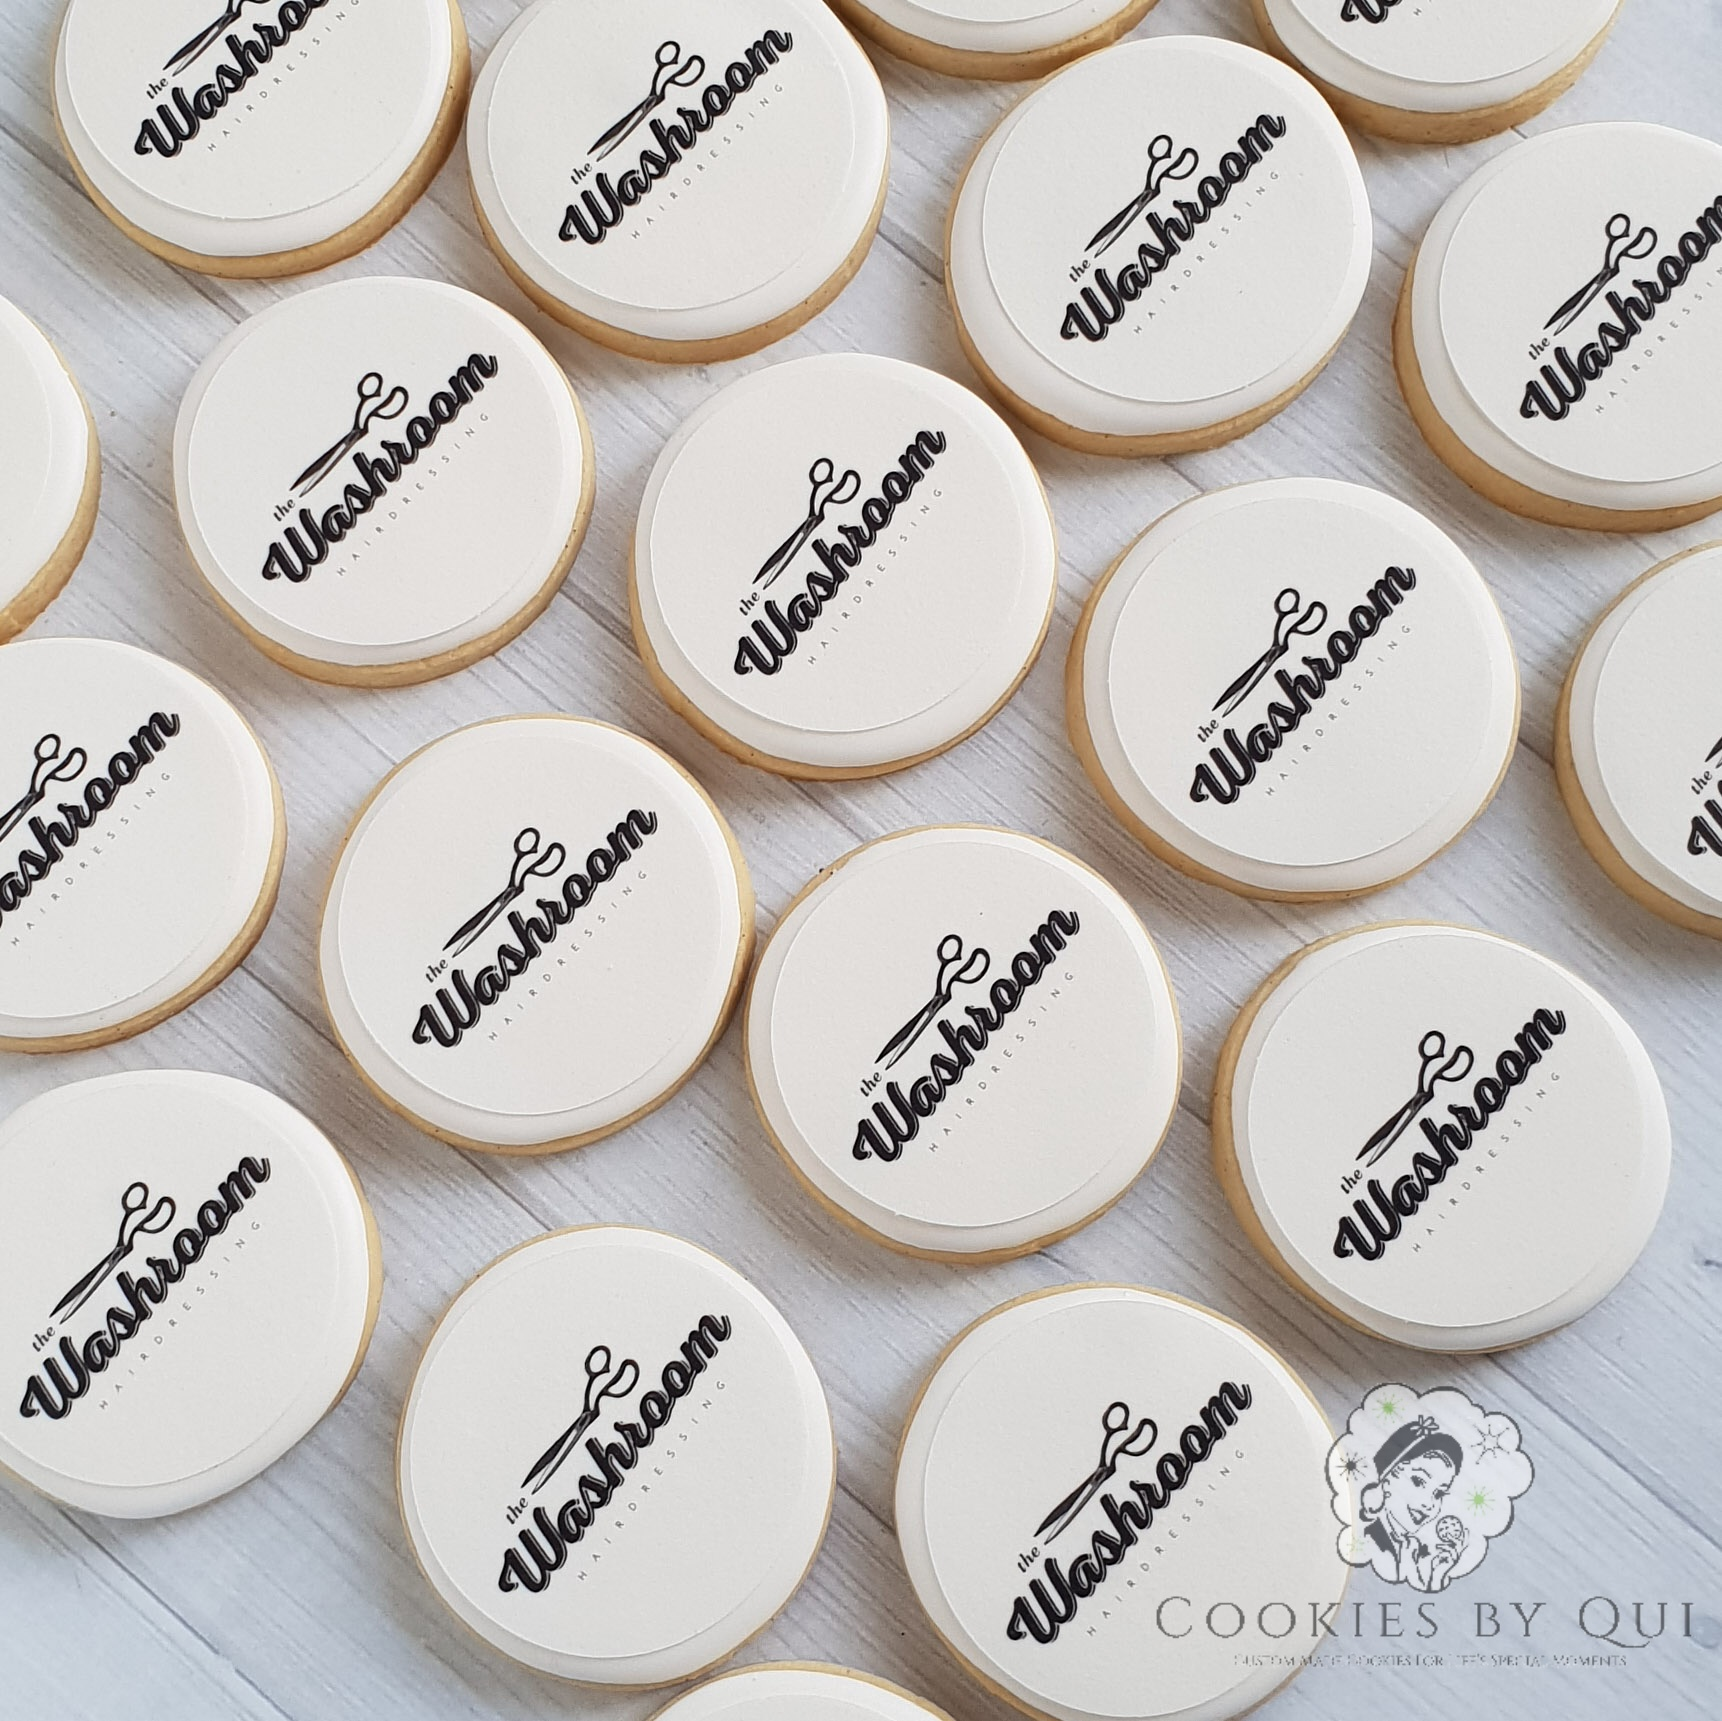 The Washroom Edible Image Logo Cookies